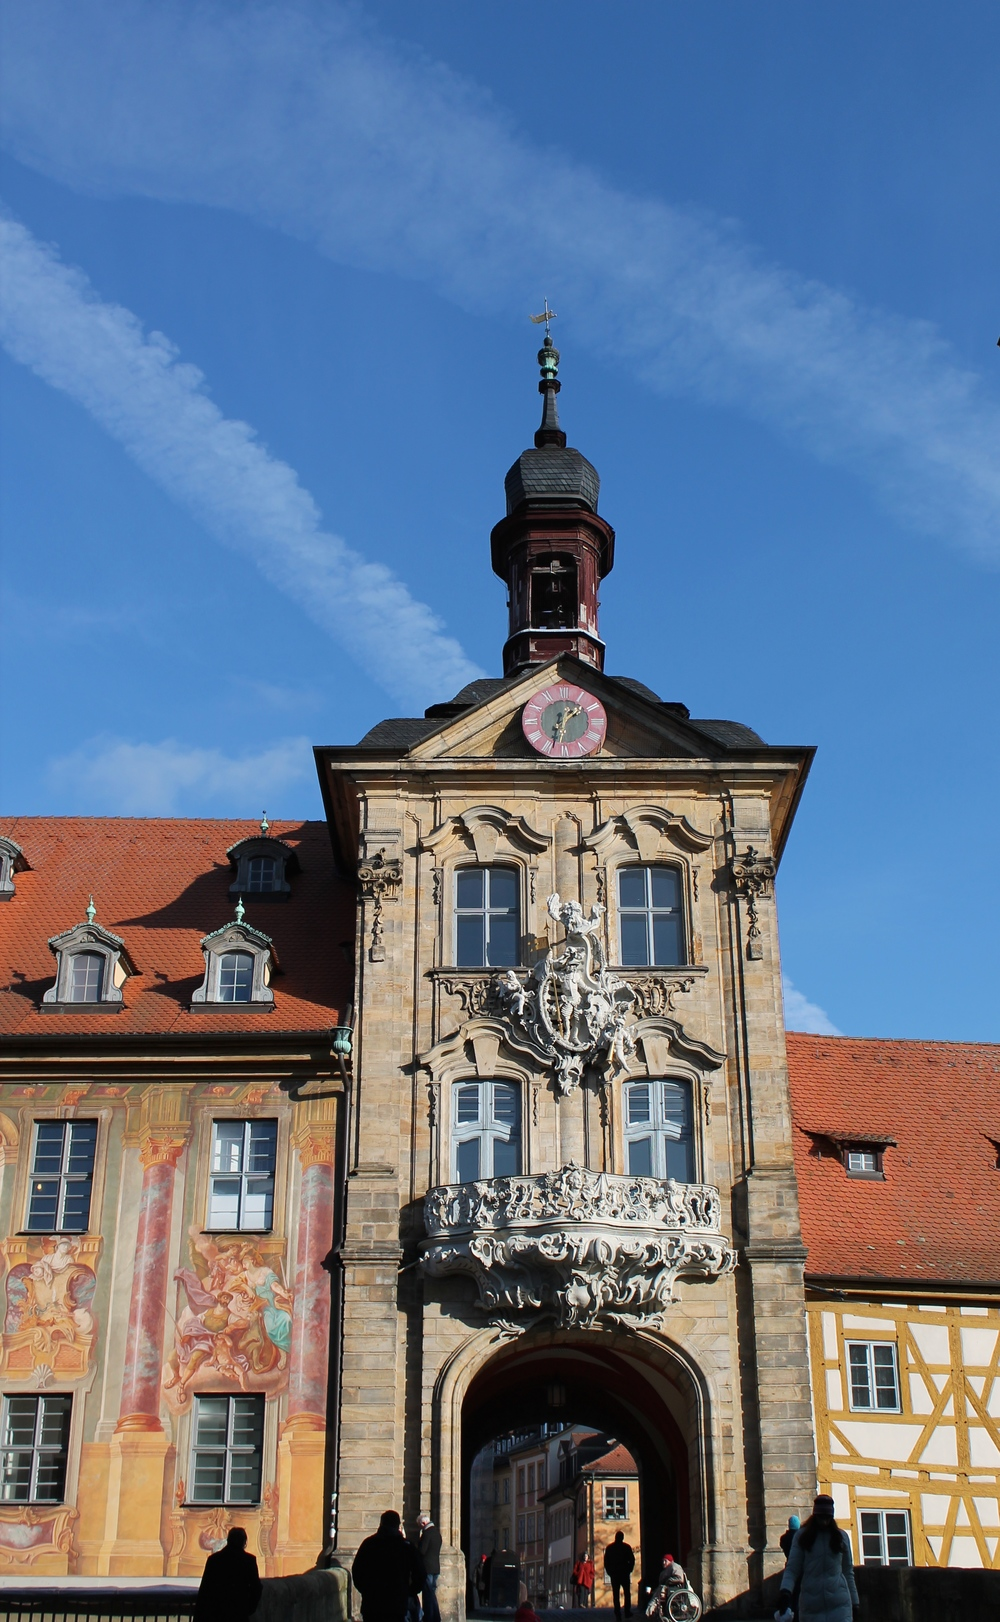 The Altes Rathaus (Old Townhall) in the Altstadt